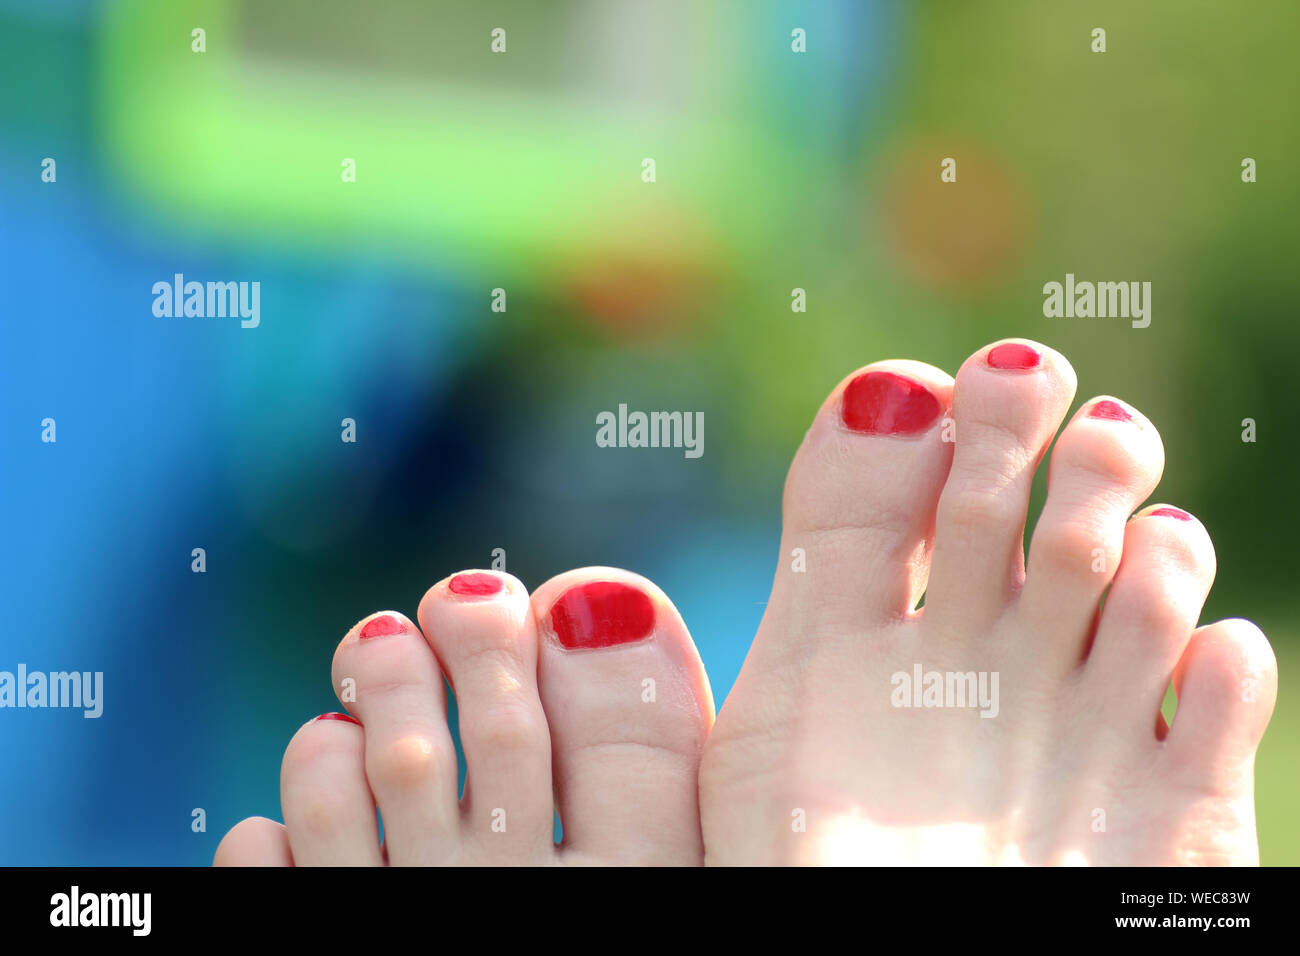 Phenomenal Painted Toenails Women Stock Photos Painted Toenails Women Unemploymentrelief Wooden Chair Designs For Living Room Unemploymentrelieforg